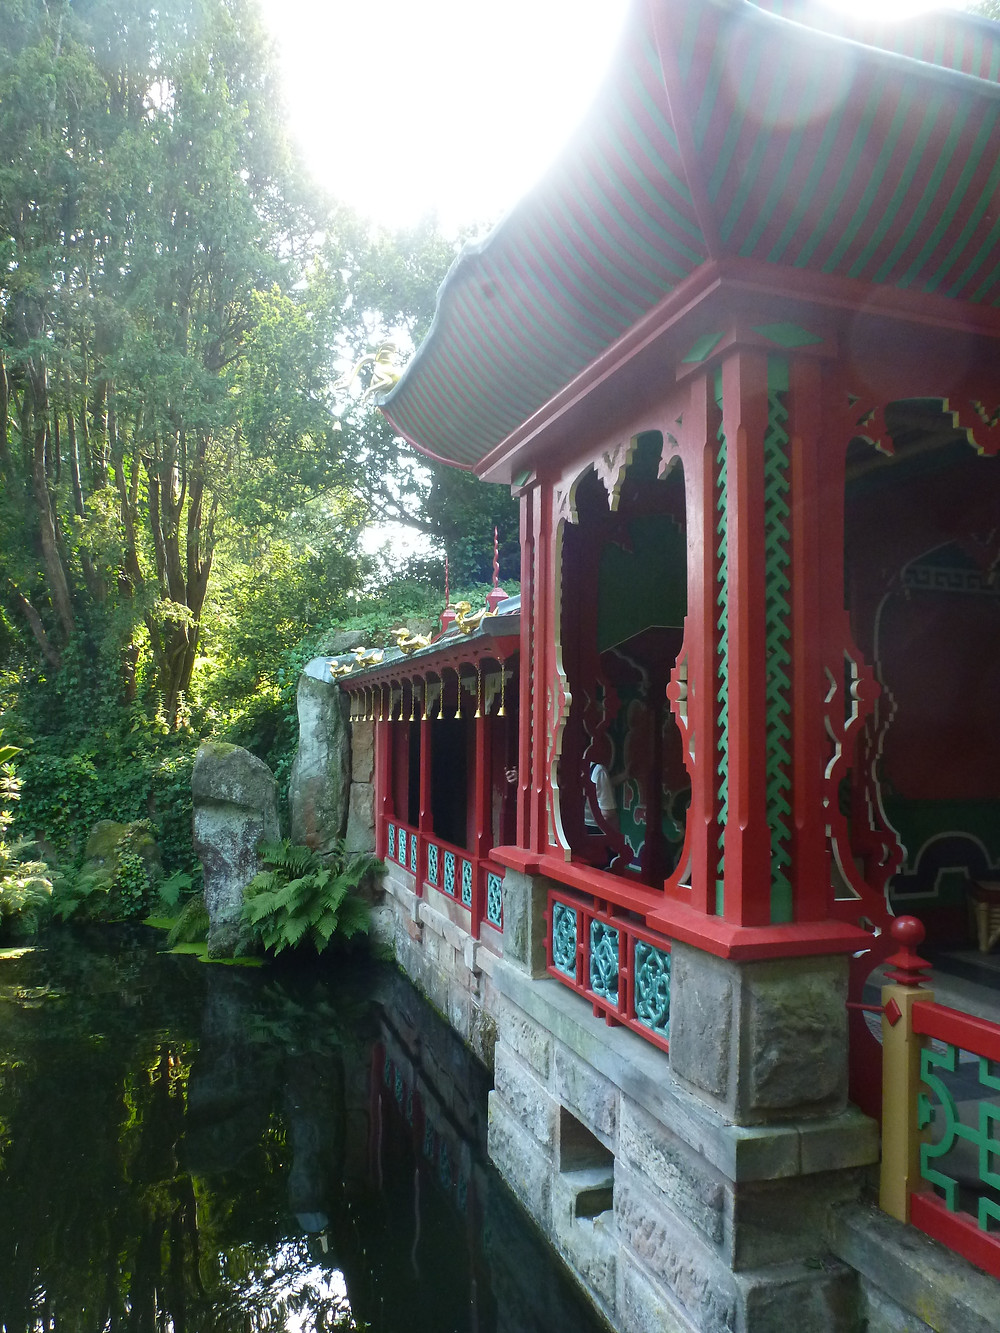 The Chinese Garden Temple